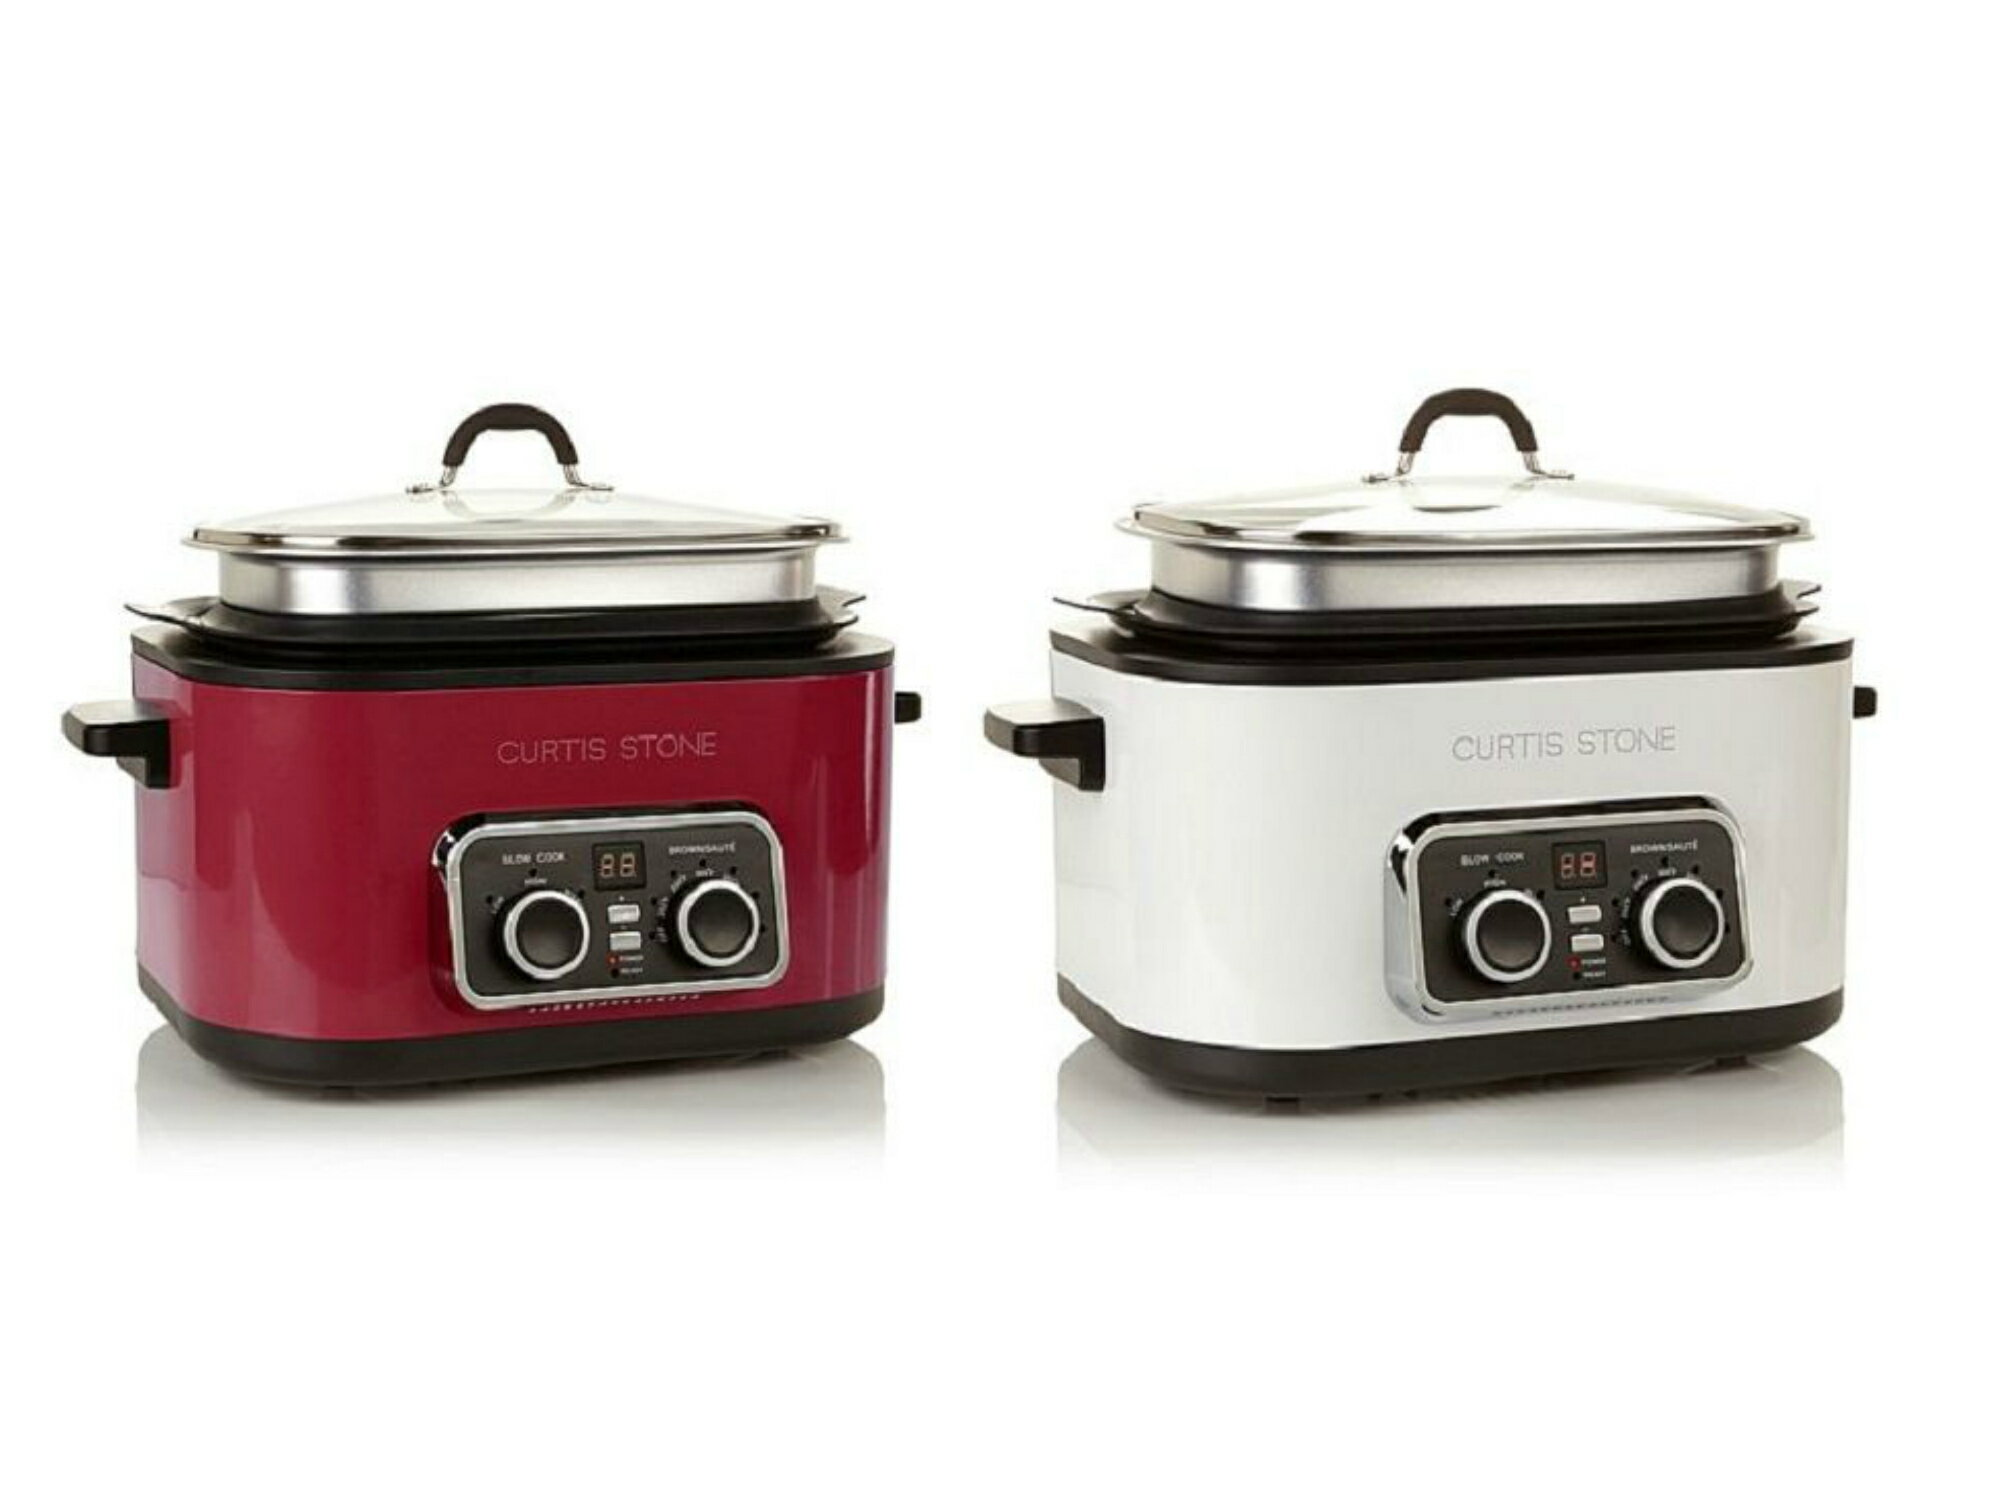 Curtis Stone 5 in 1 Ultimate Multicooker 6 Qt Non Stick With Lid 0